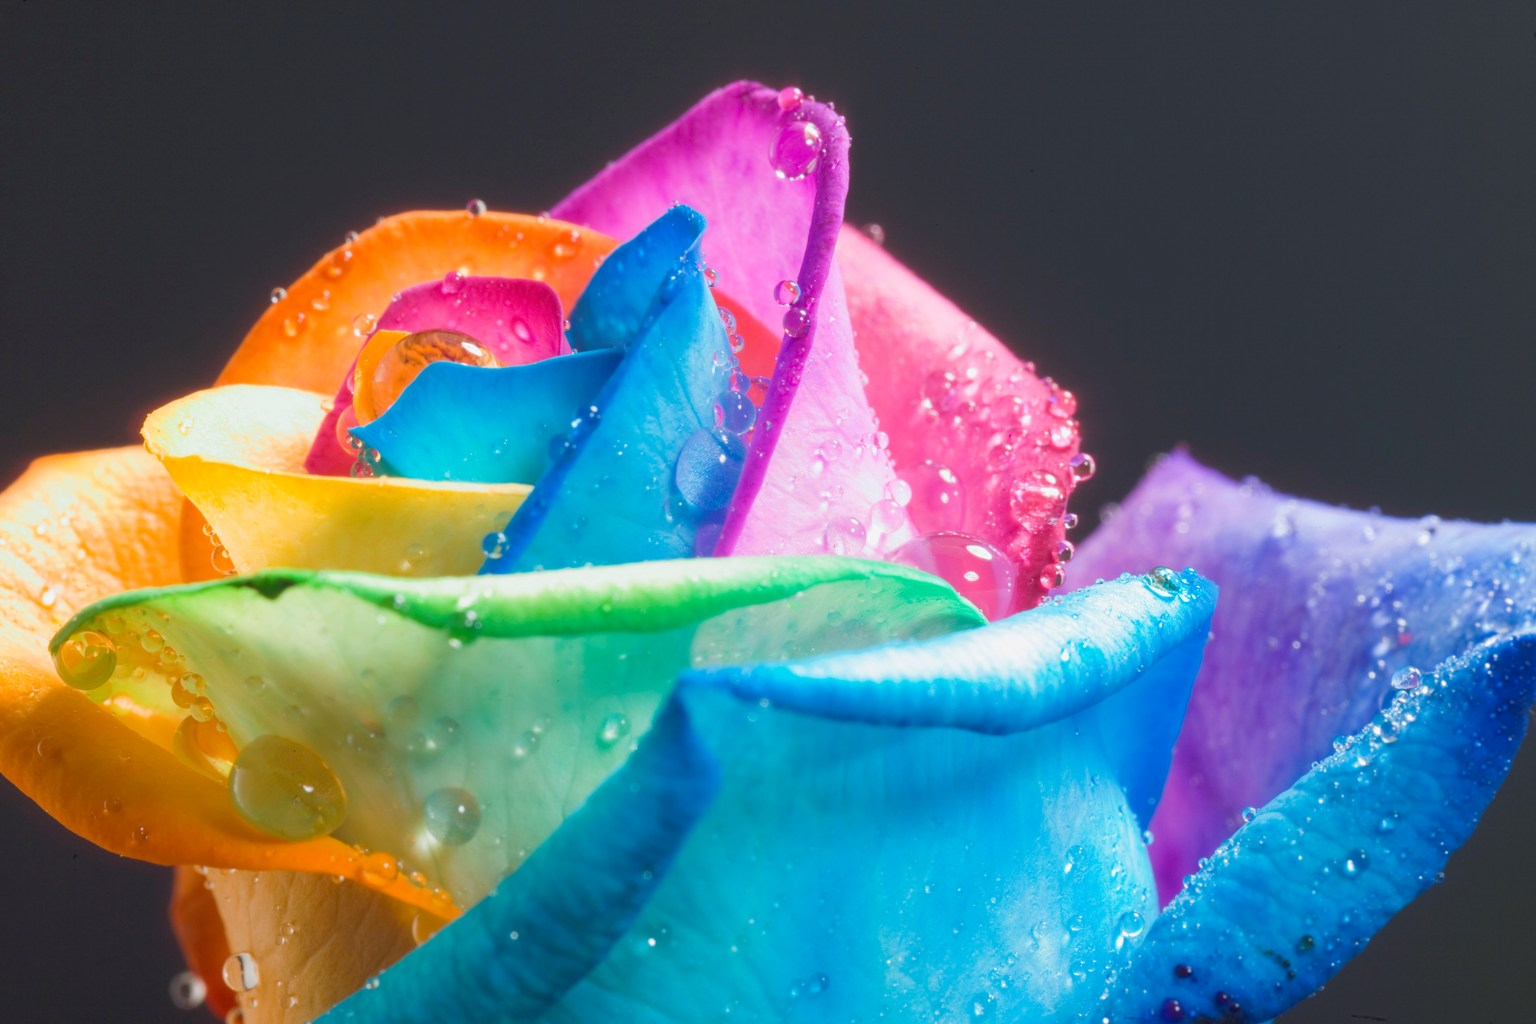 FAMOUS_perfect_Rainbow_Rose_by_HappyRoses.jpg